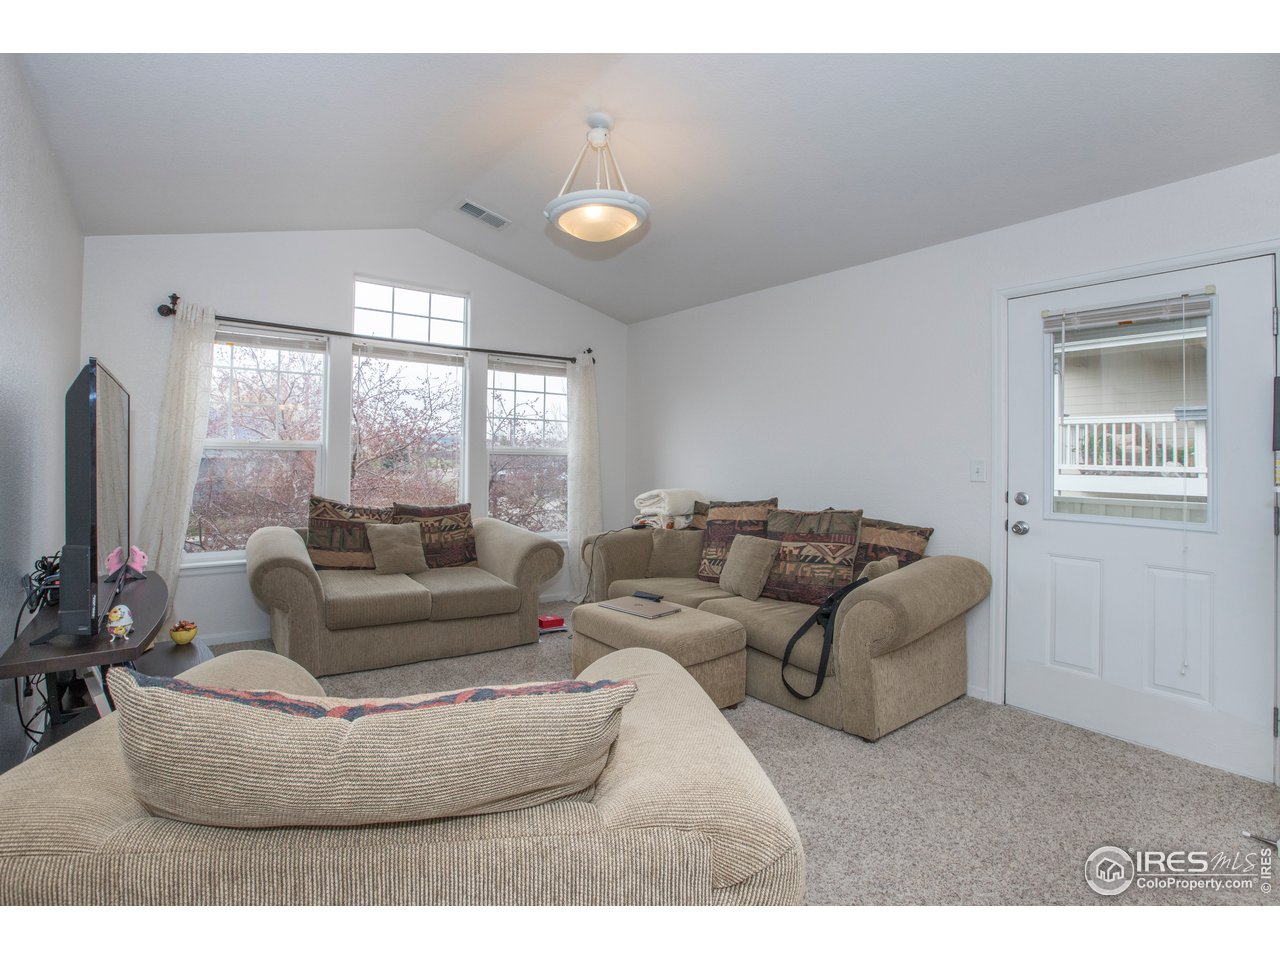 Stairwell opens to a bright living room